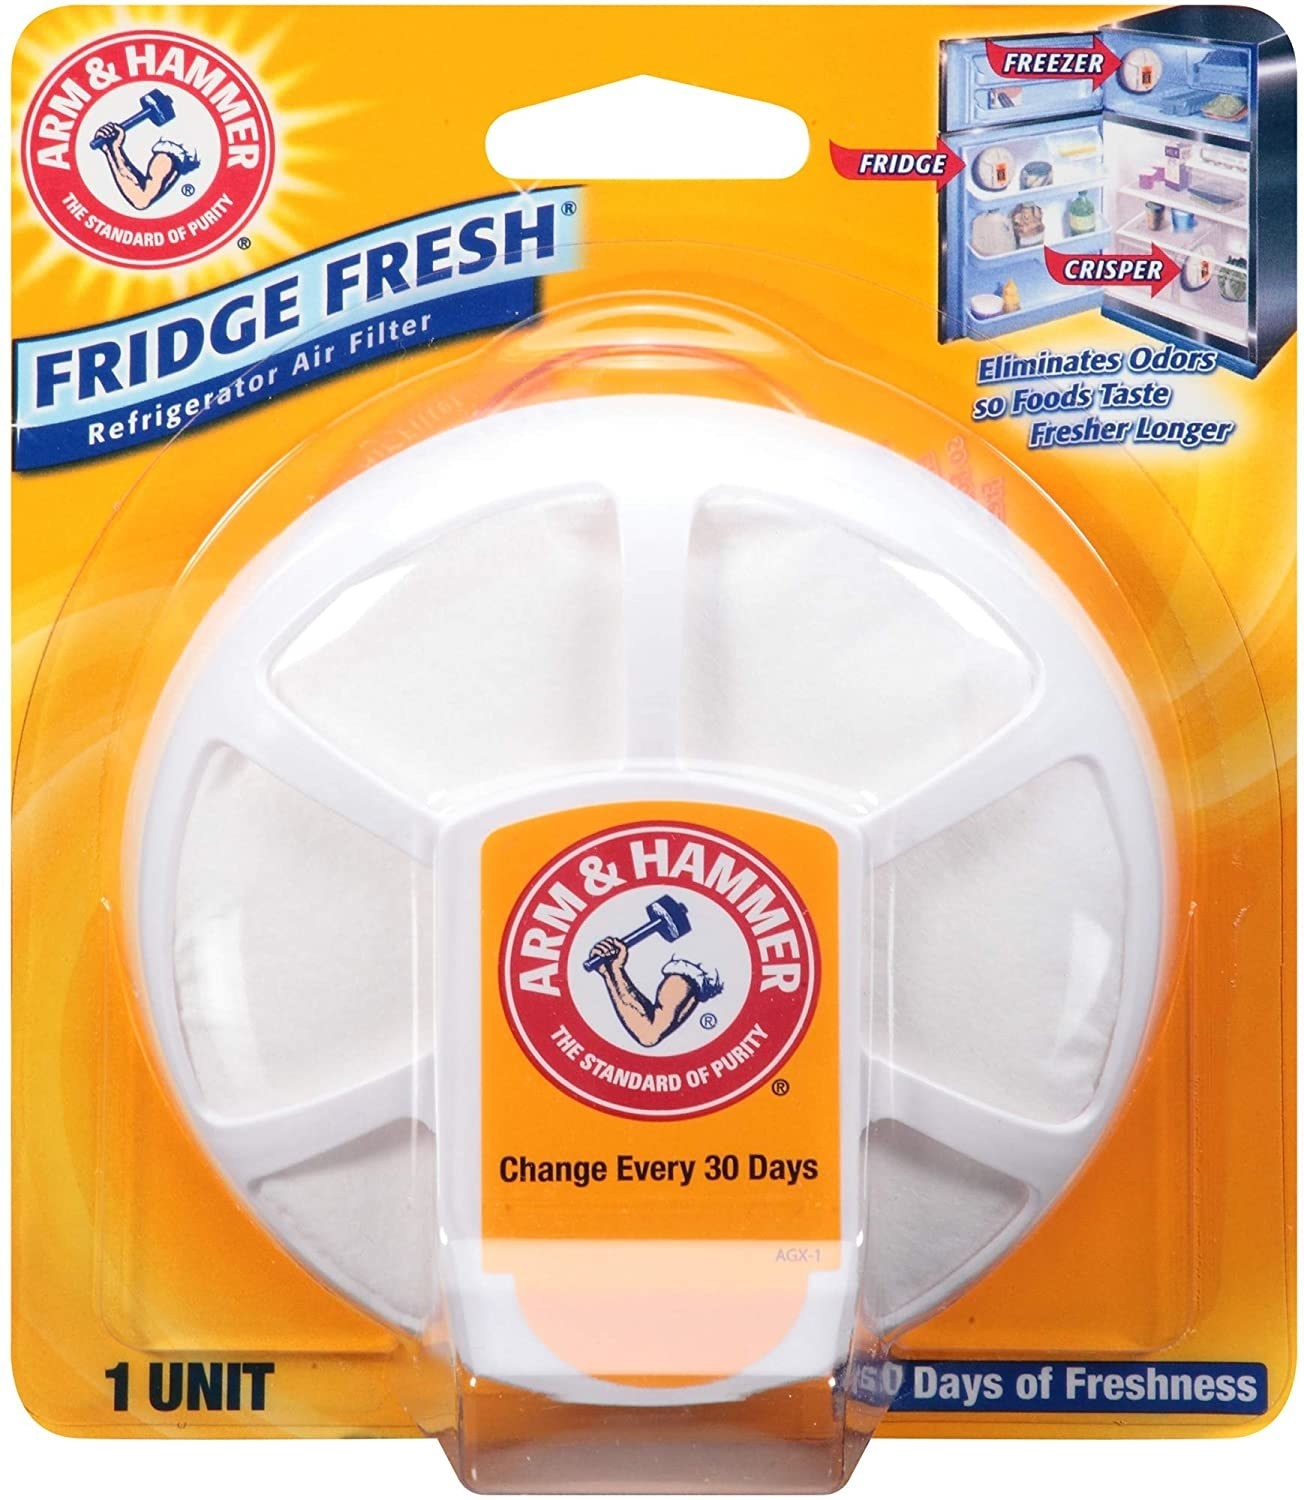 A round air filter gadget in packaging